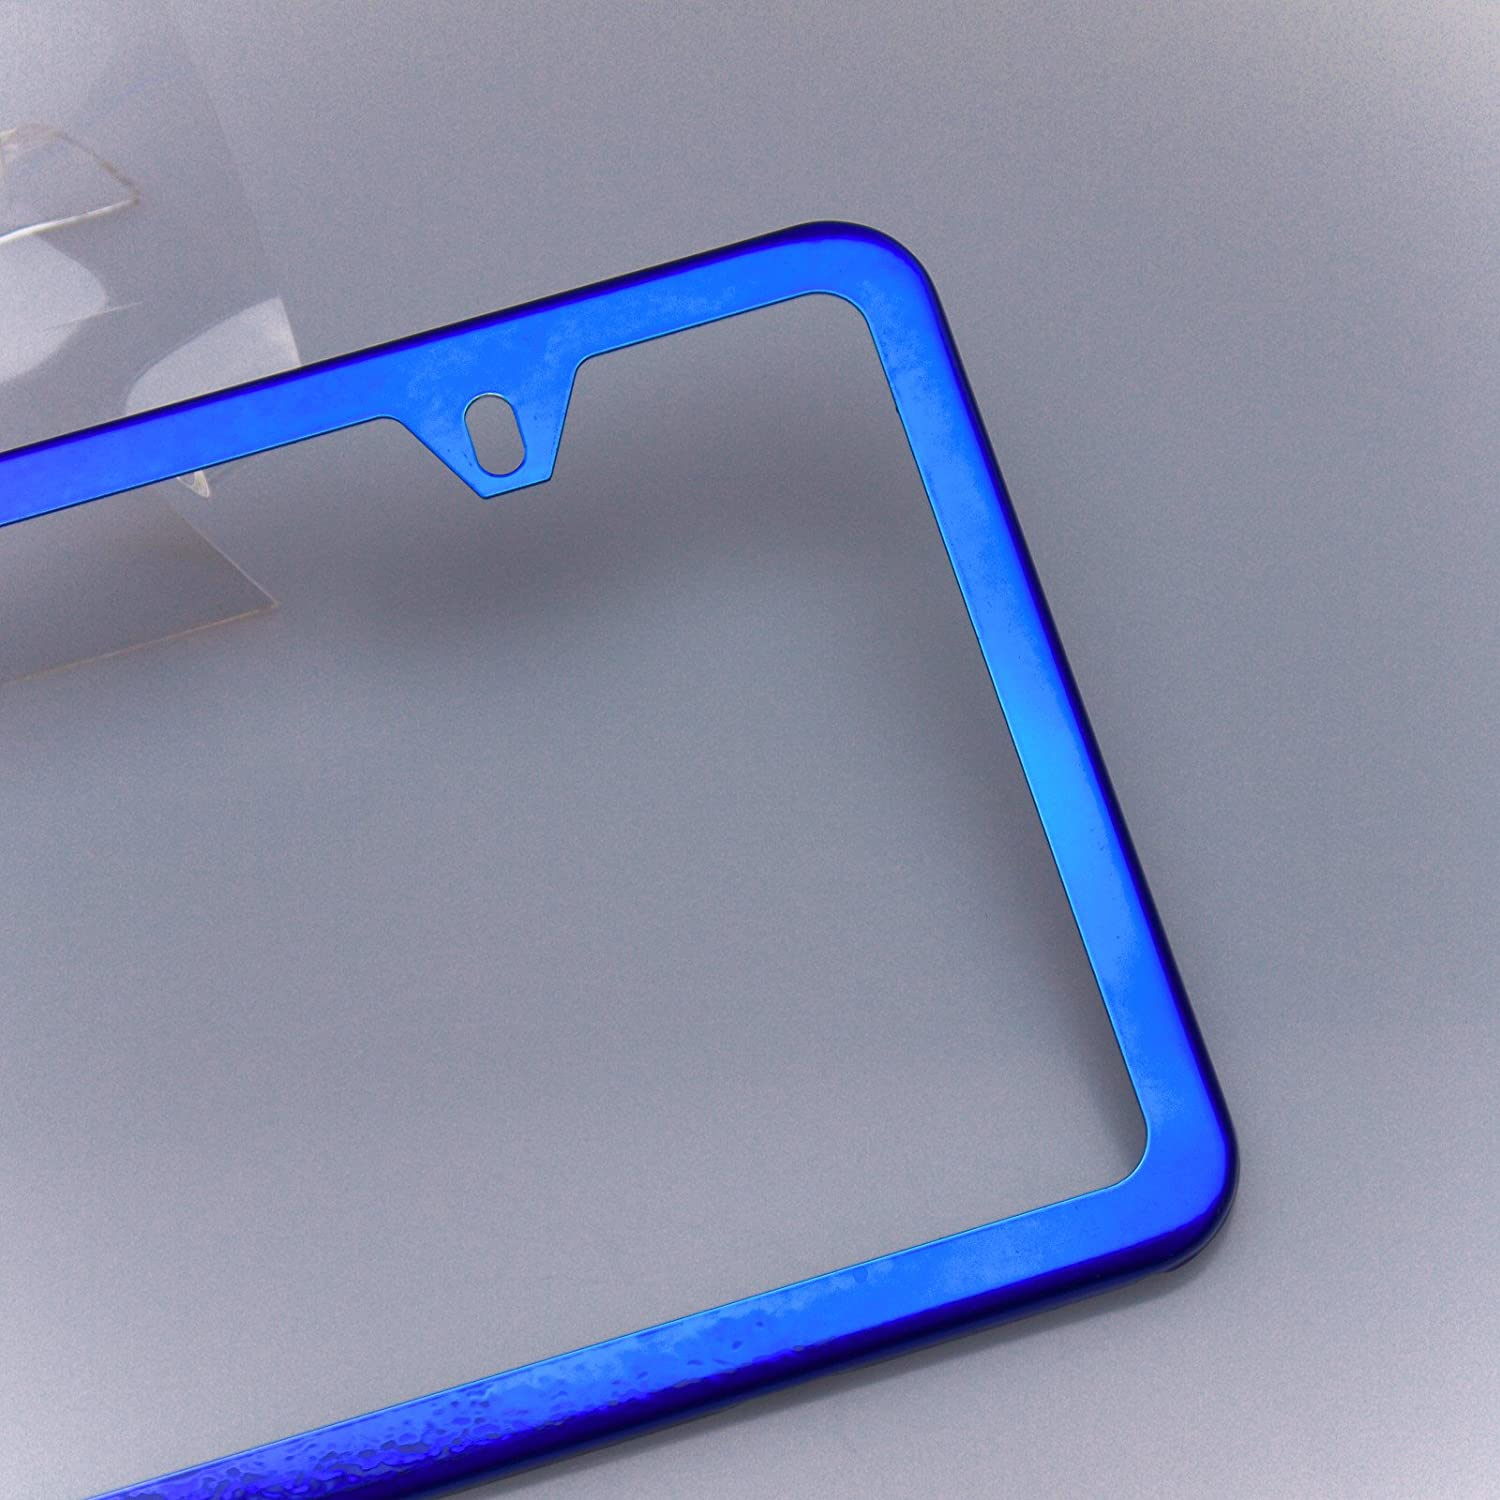 Amazon.com: Circle Cool Blue Chrome Powder Coated Stainless Steel License Plate Slim Two Hole Frame Holder Bracket: Automotive